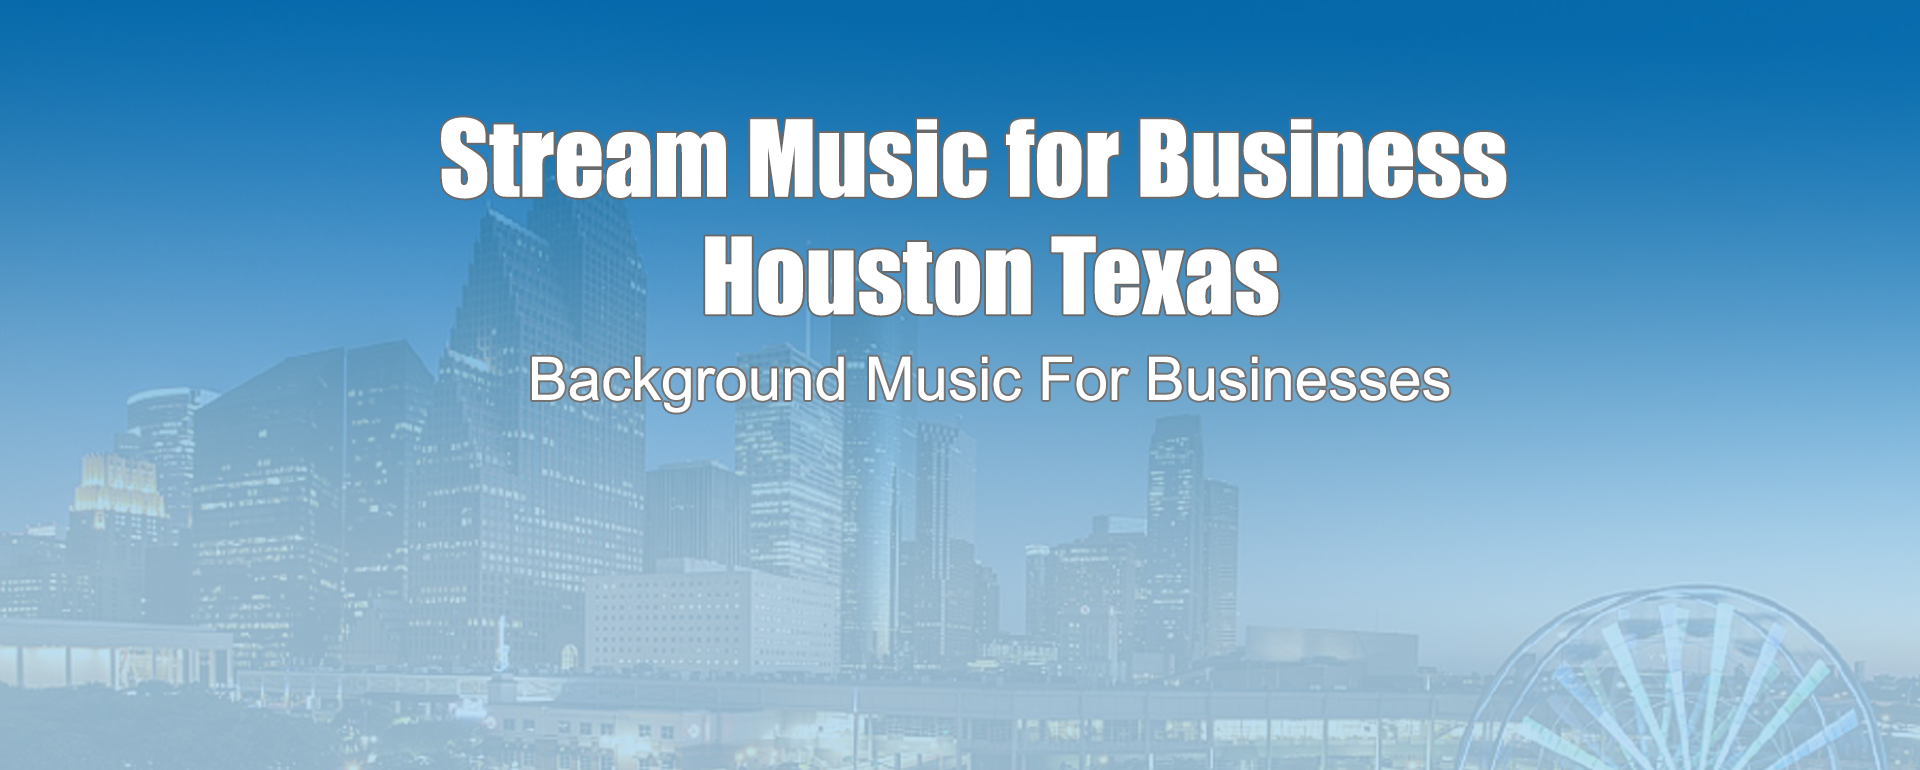 Houston/Texas/77234 Best Streaming Music Service For ...